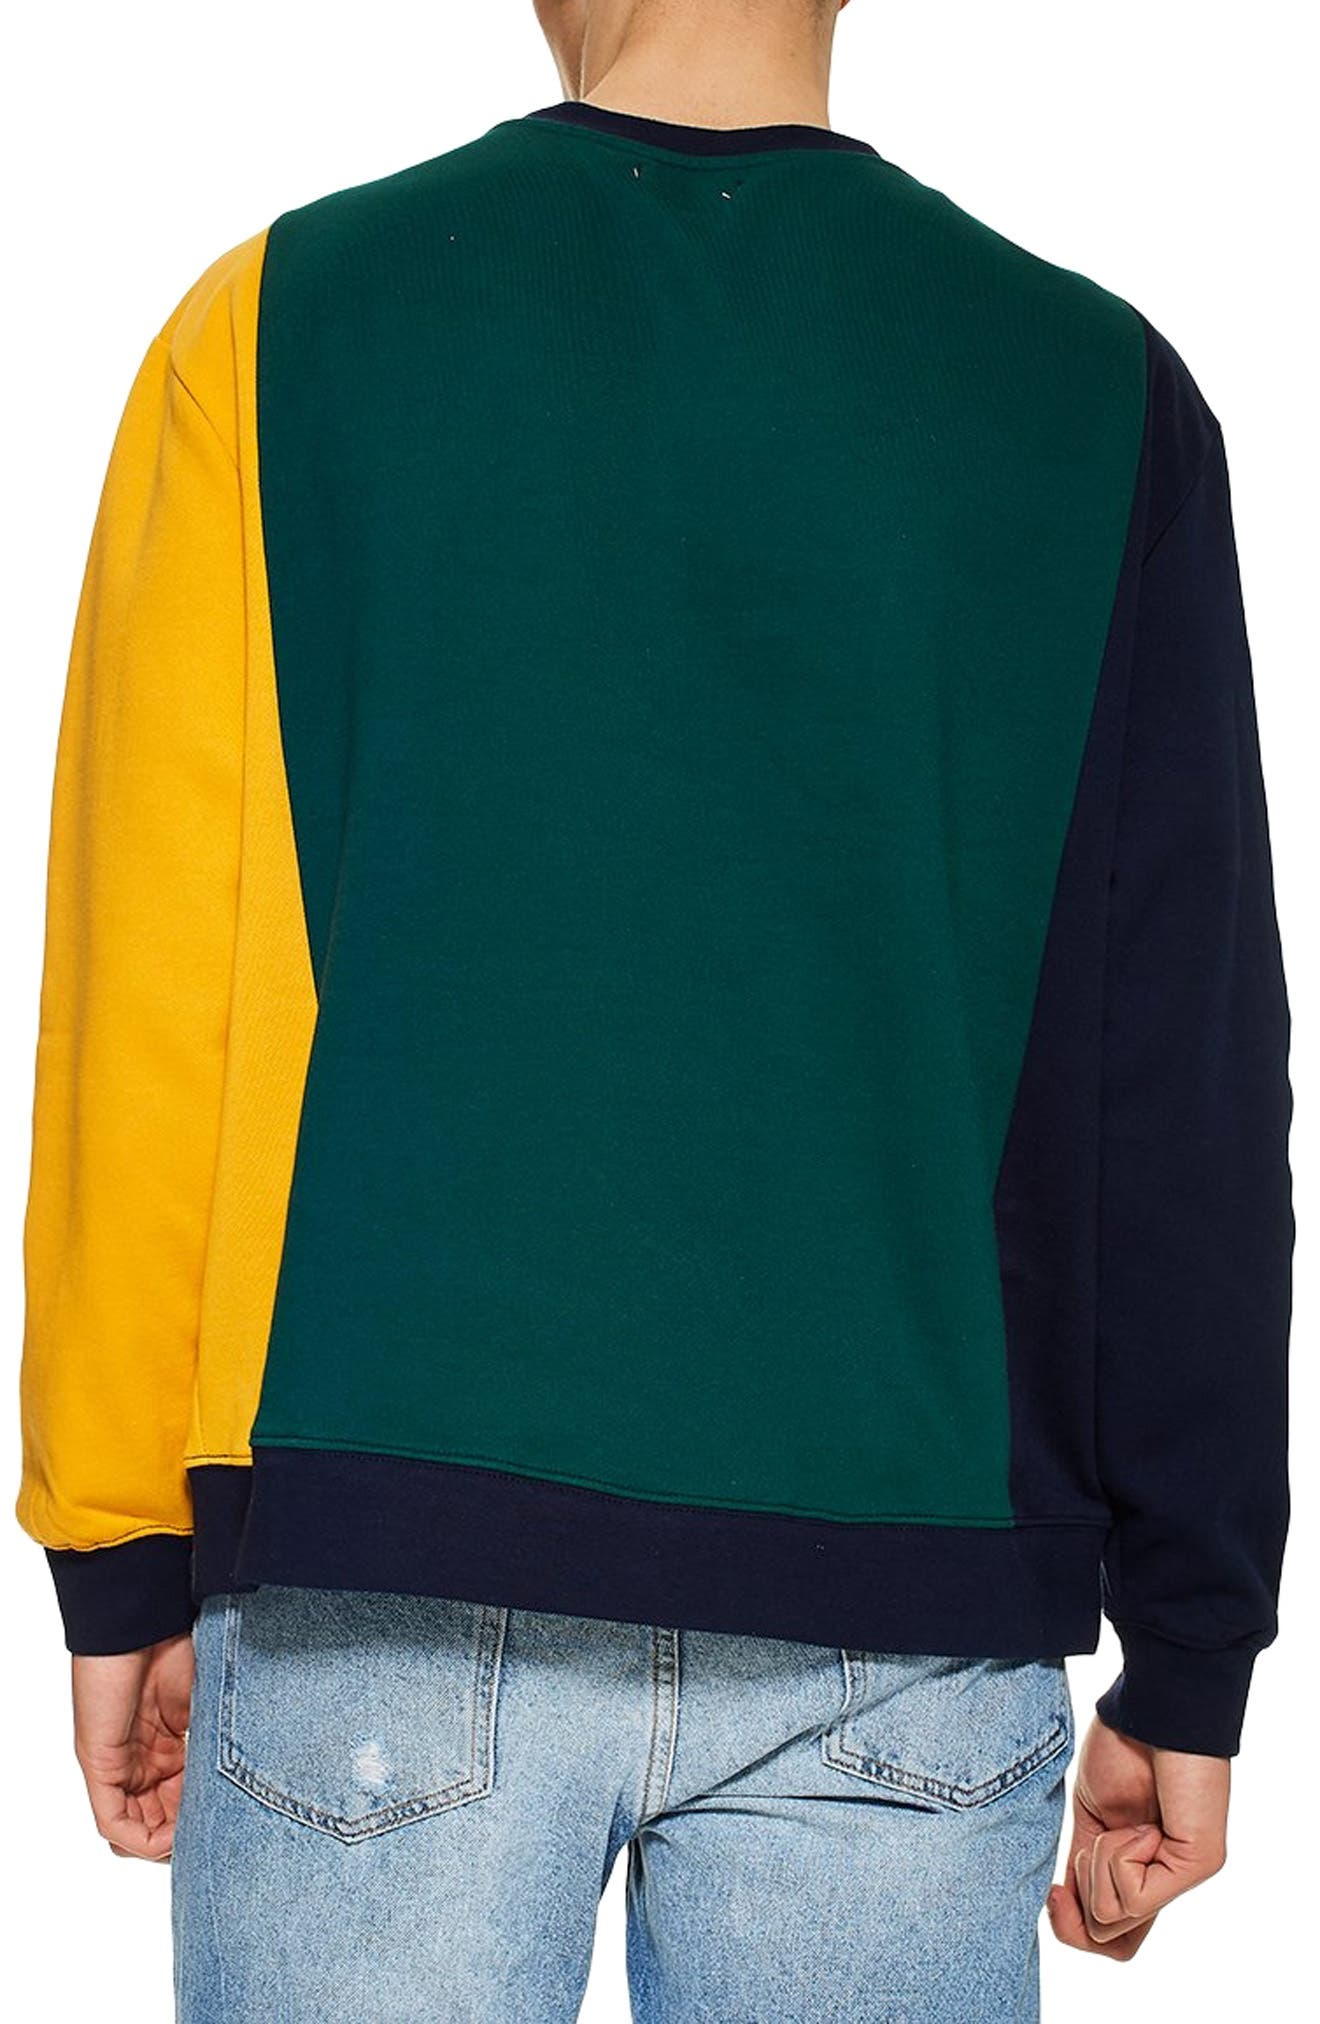 TOPMAN, Classic Fit Stamford Sweatshirt, Alternate thumbnail 2, color, GREEN MULTI